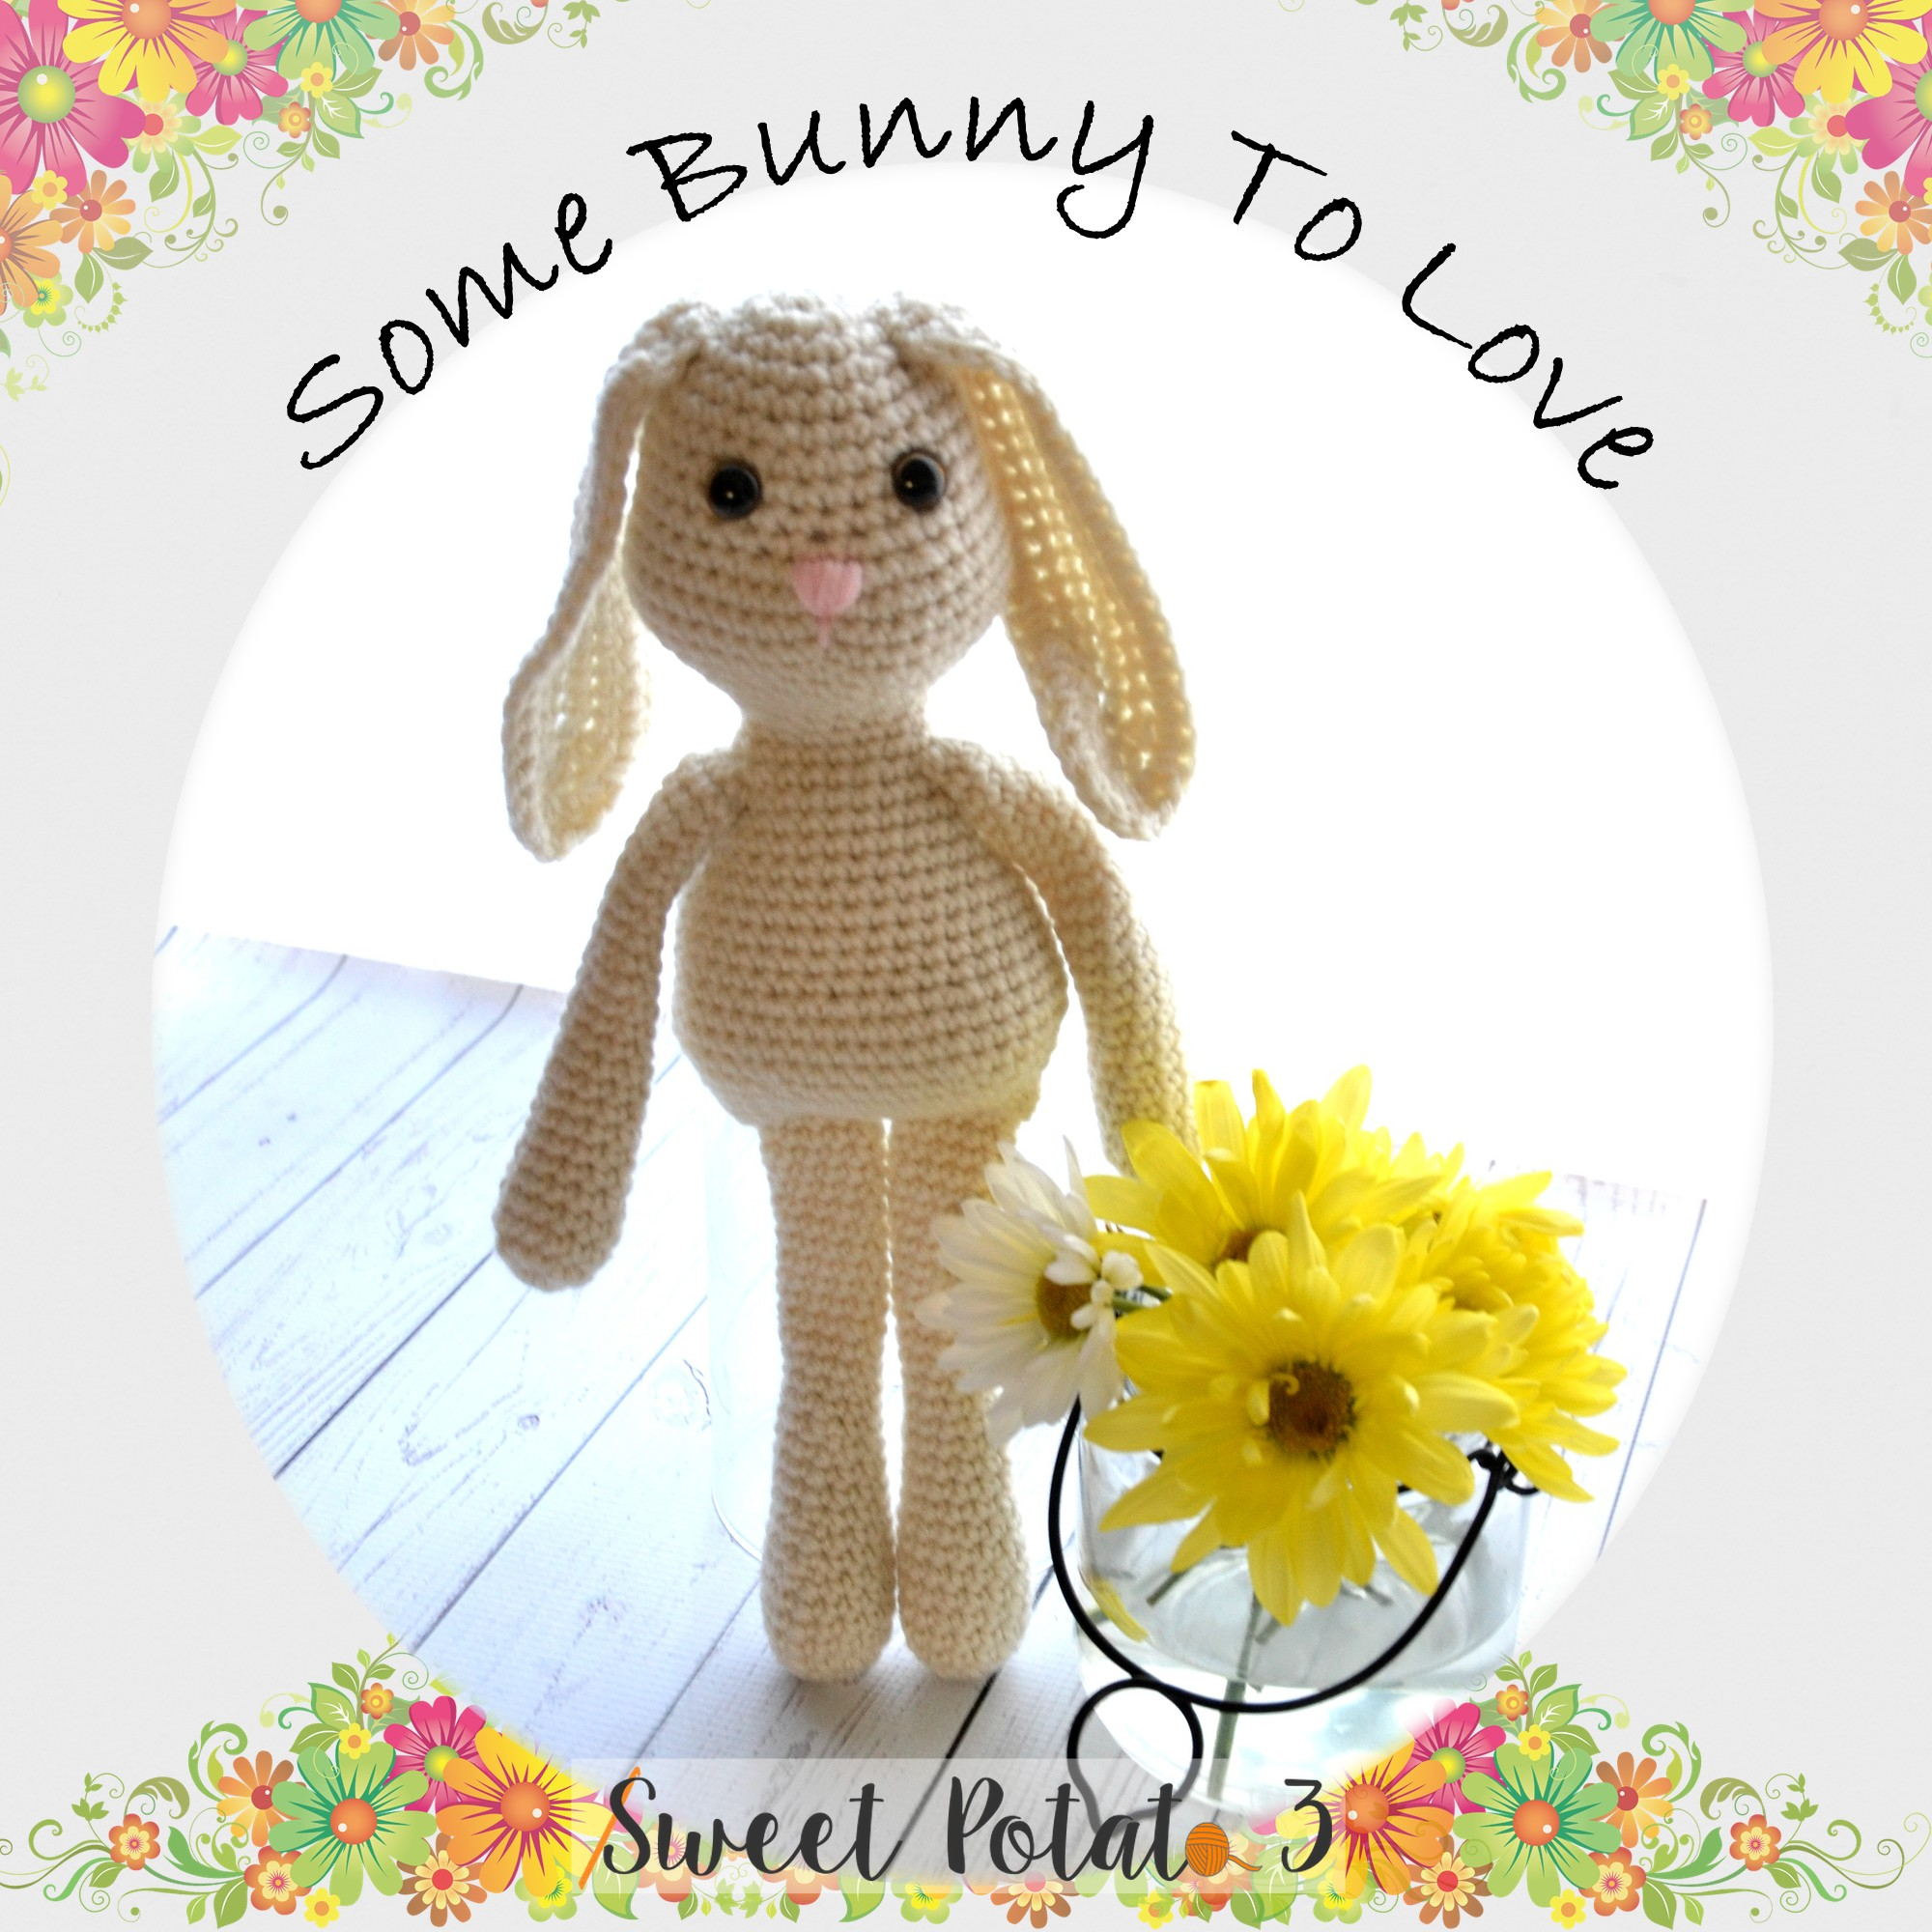 Some Bunny To Love Crochet Pattern